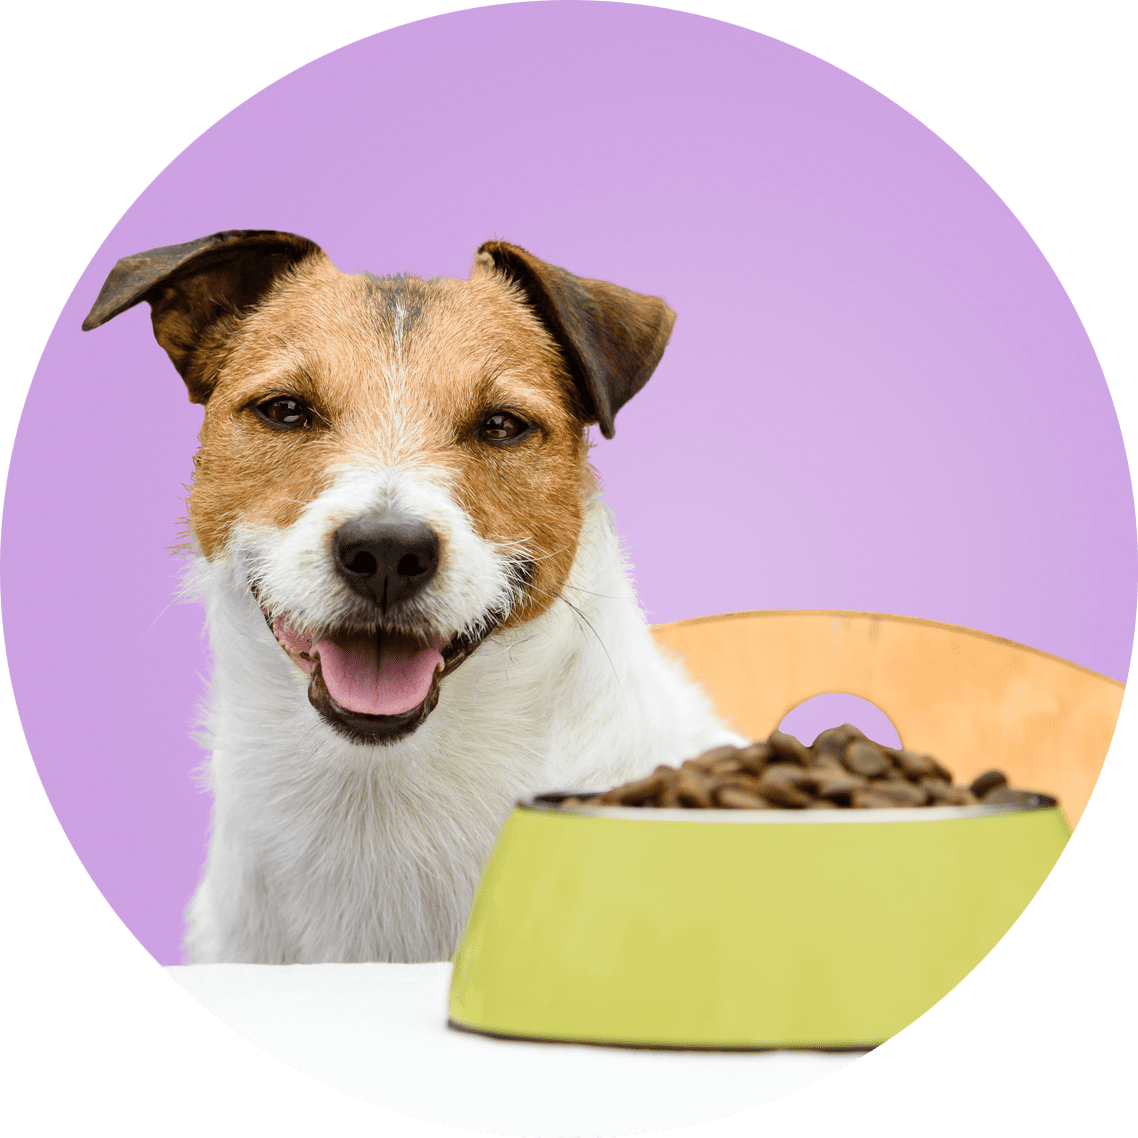 ruff life only sells pet food made with real ingredients